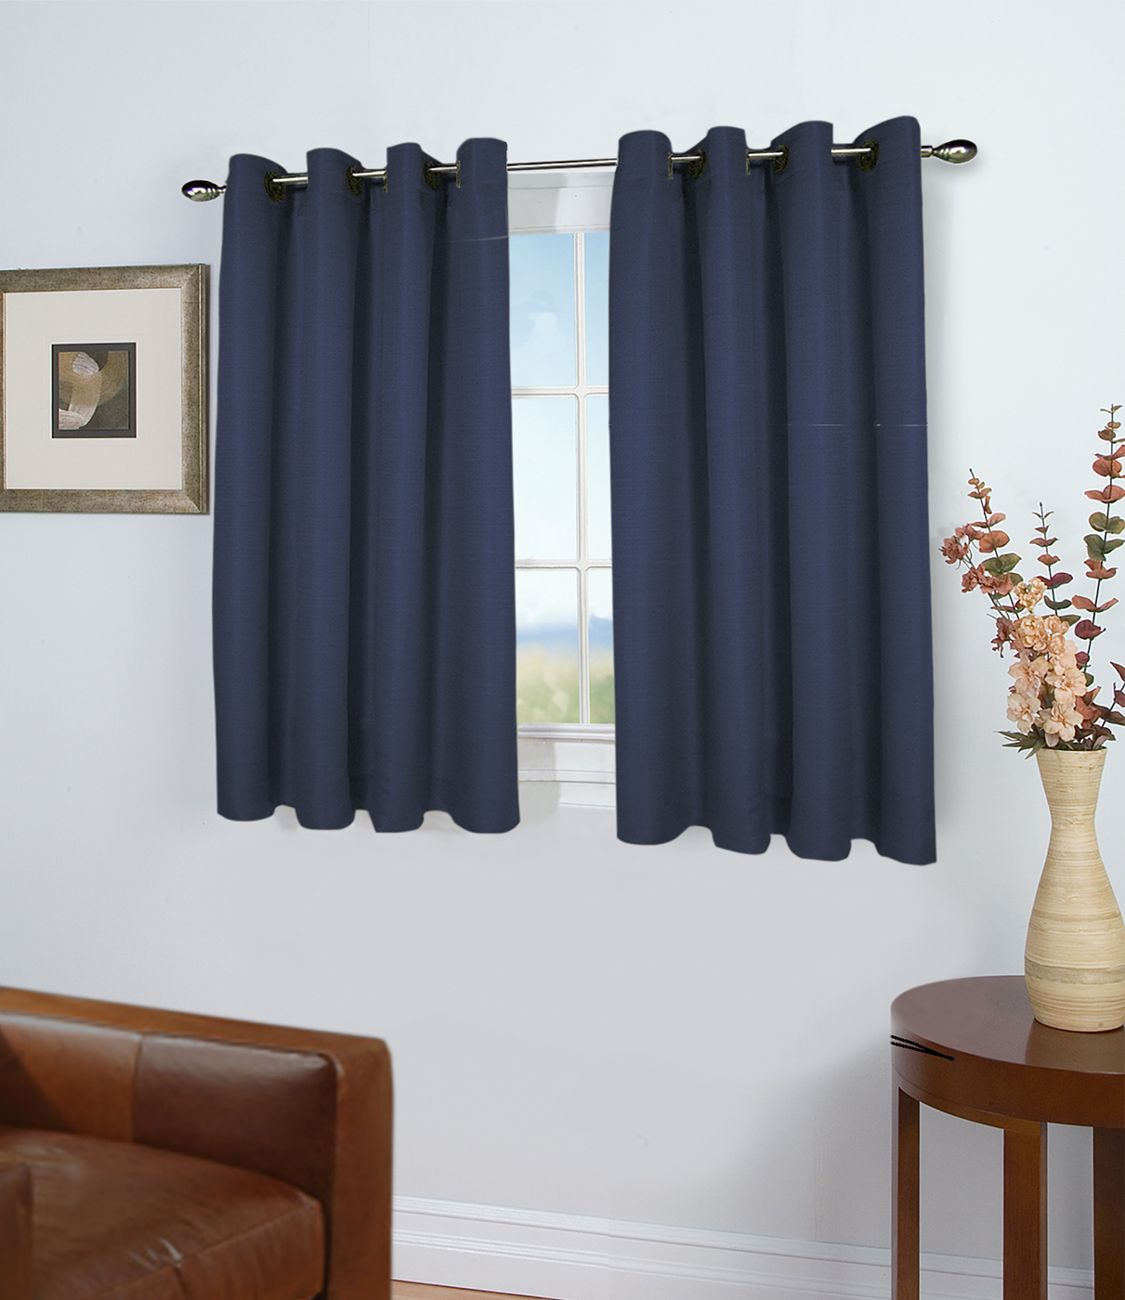 45 Inch Long Curtains – Thecurtainshop For Ultimate Blackout Short Length Grommet Curtain Panels (View 10 of 30)